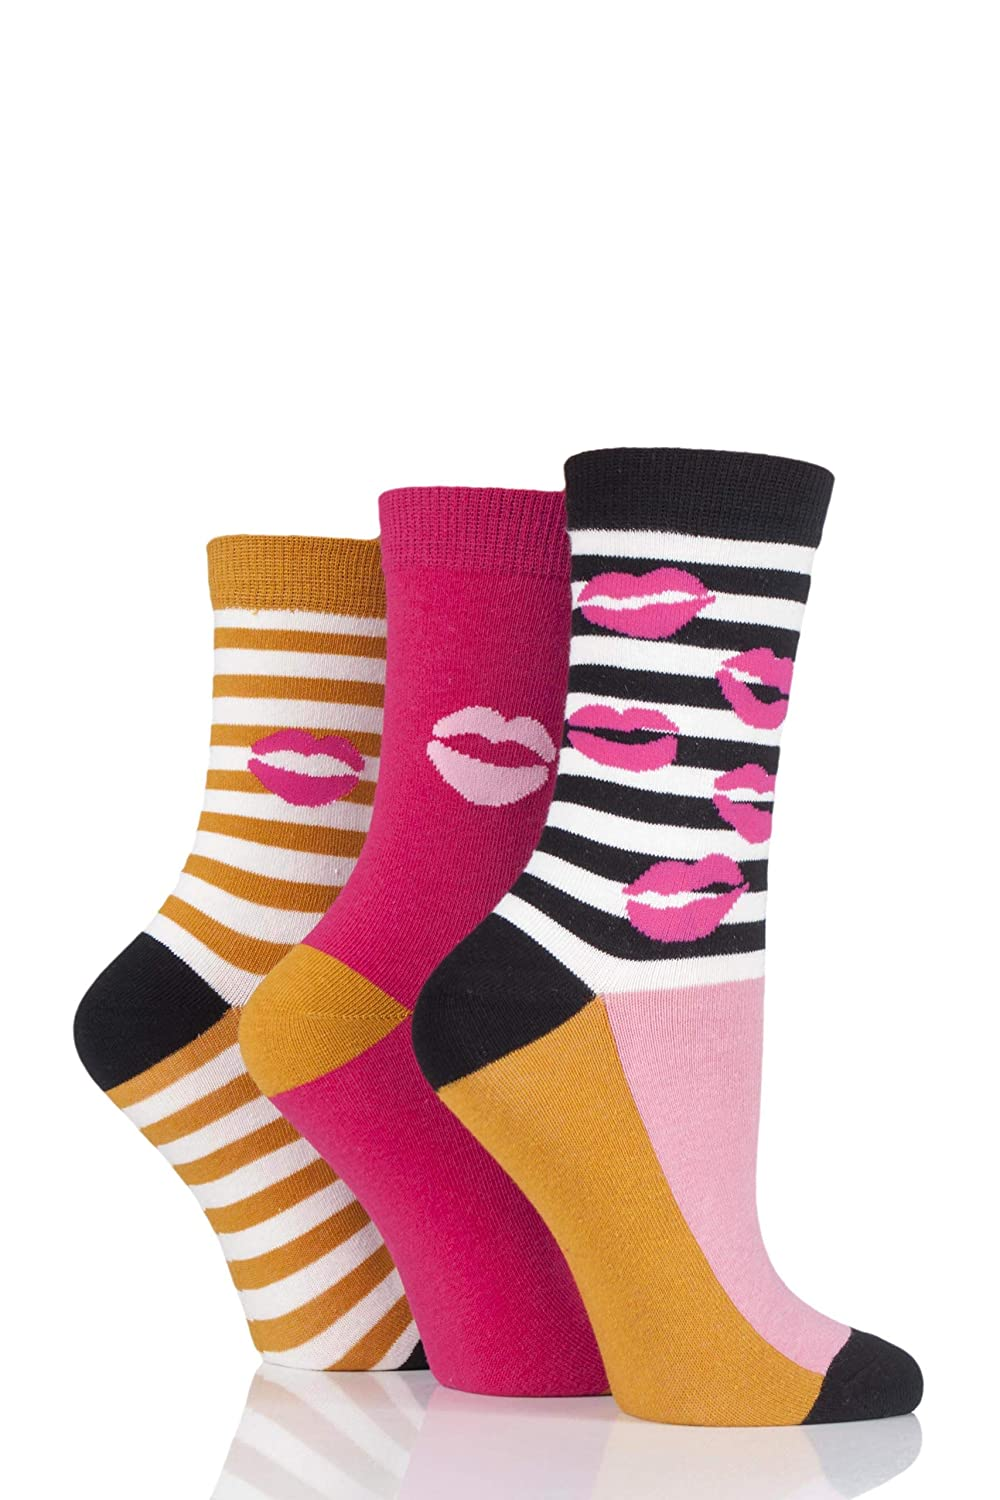 Lulu Guinness Ladies Kisses and Stripes Cotton Socks Pack of 3